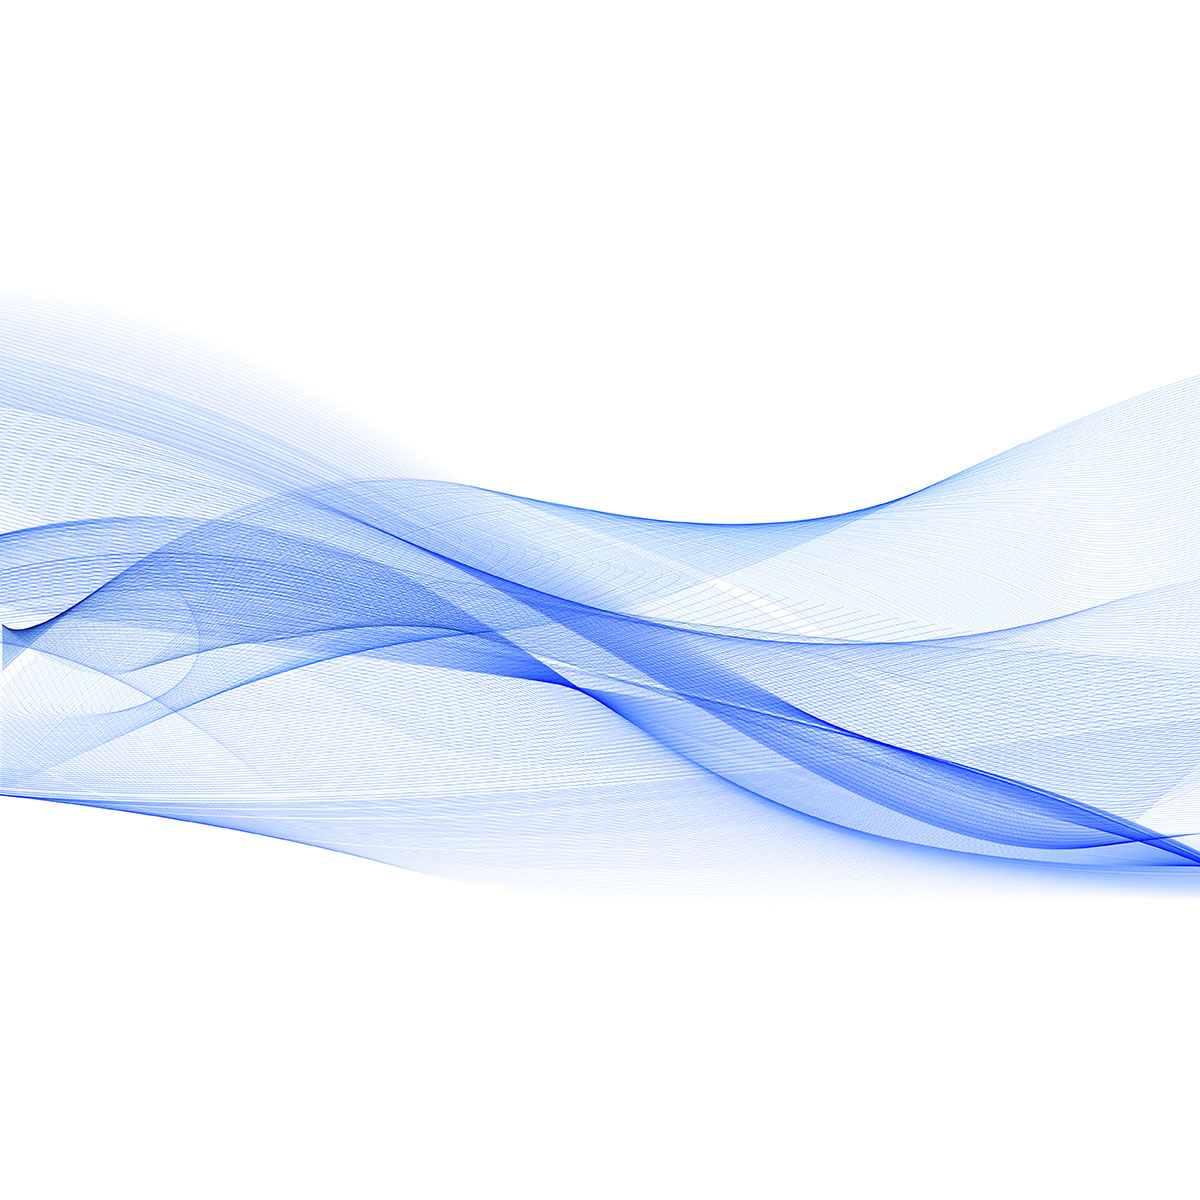 Abstract Wave Free Vector Art - (43430 Free Downloads)